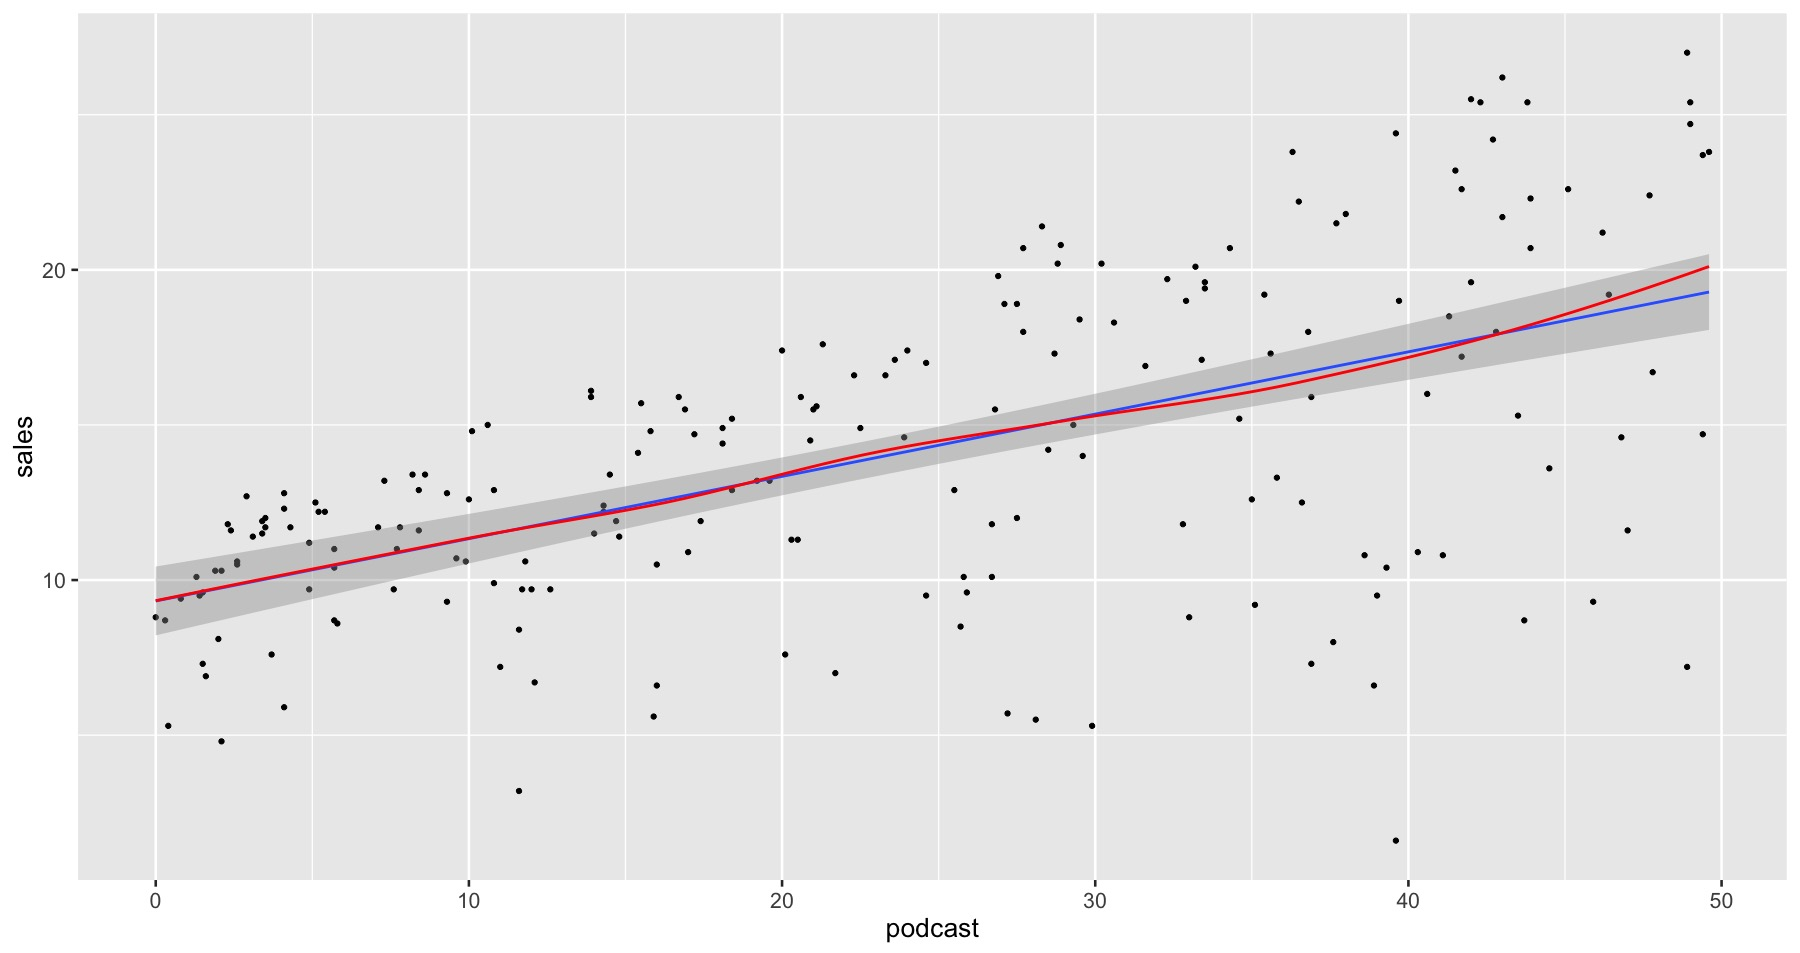 A linear regression model with a LOESS smoother